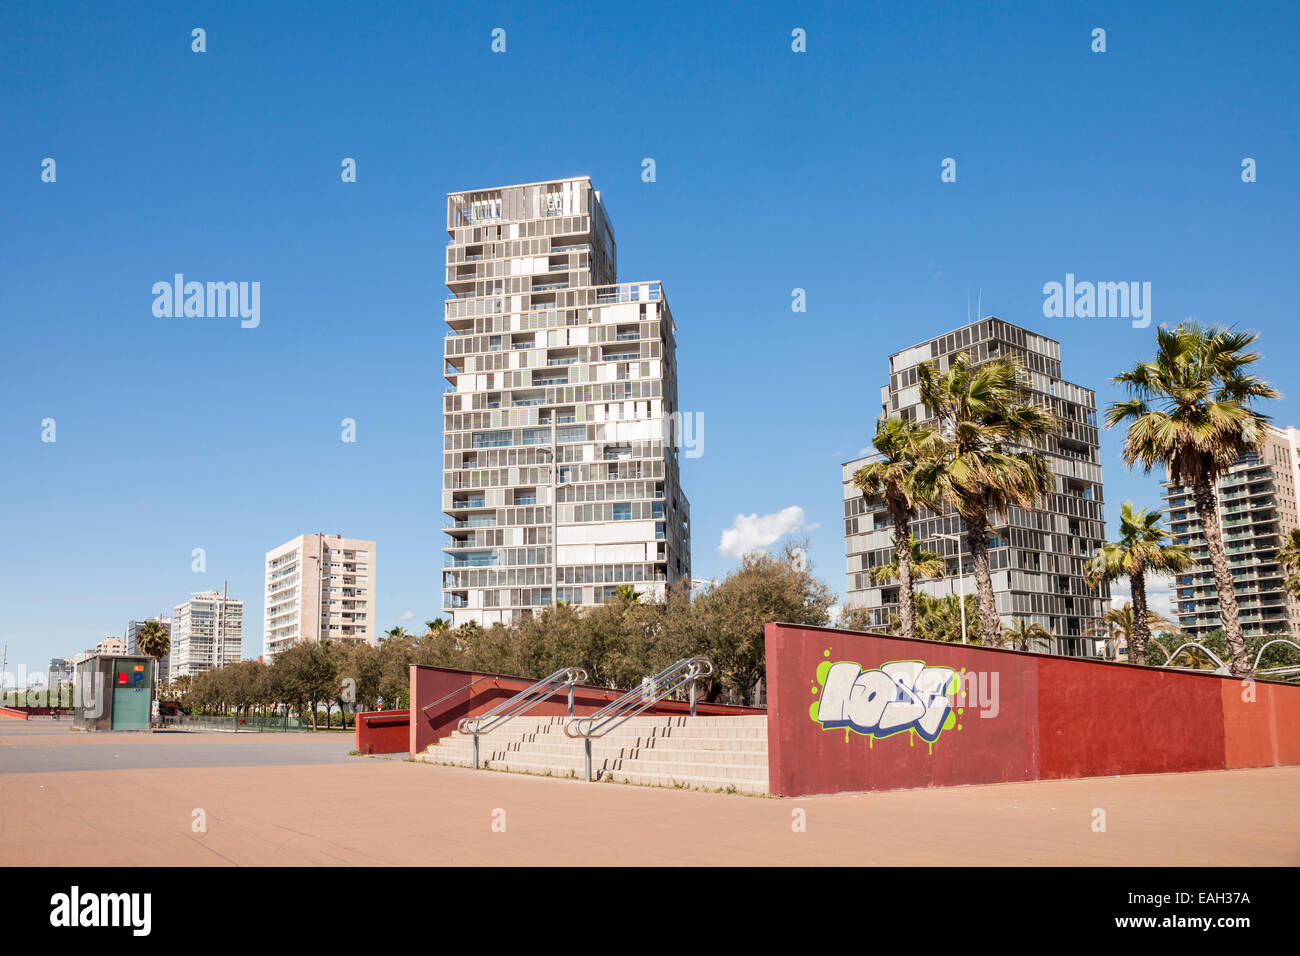 Poble Nou quarter near Bogatell beach, Barcelona, Spain - Stock Image